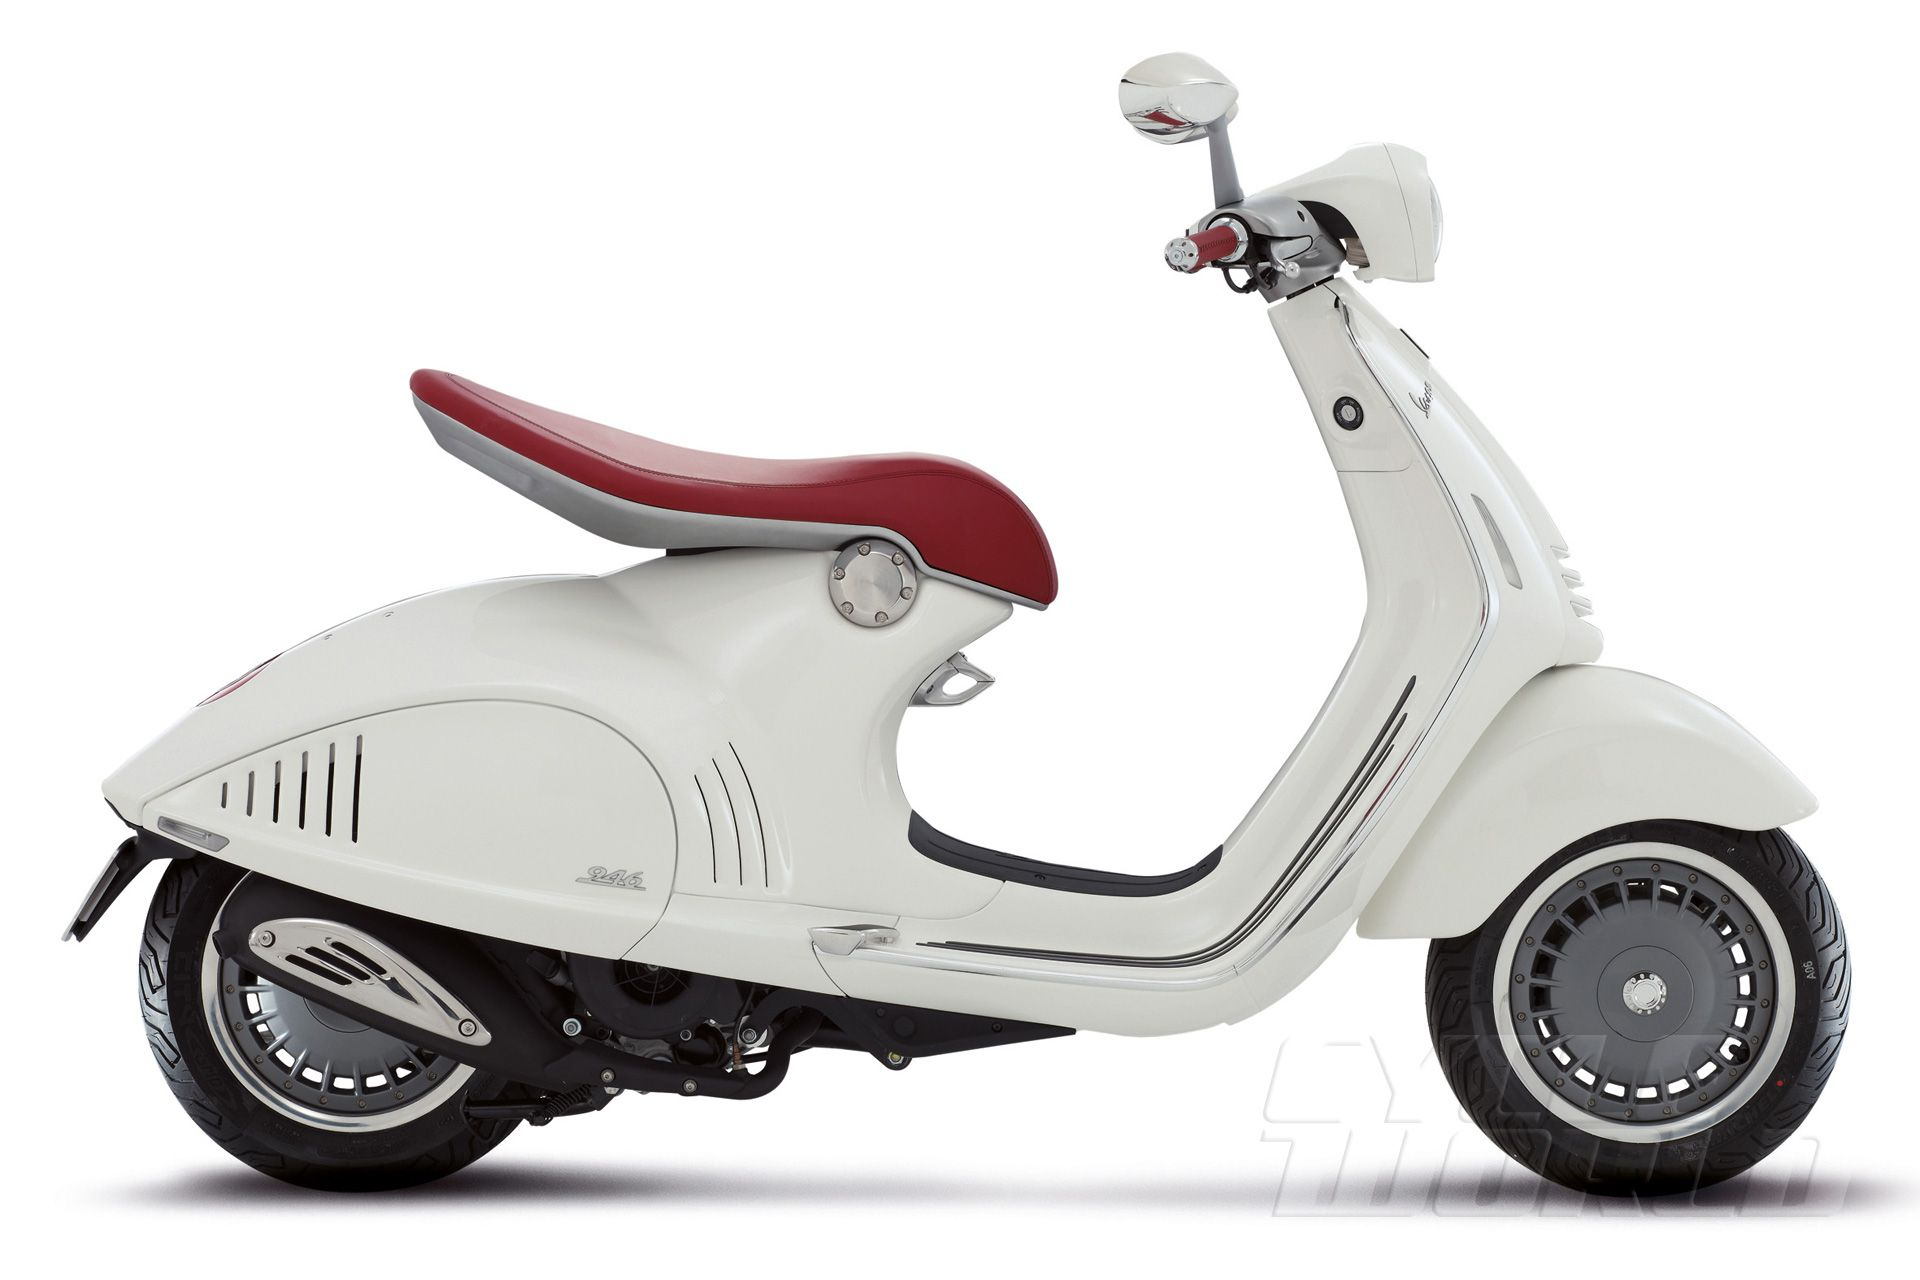 2013 vespa 946 specialedition scooter introduction